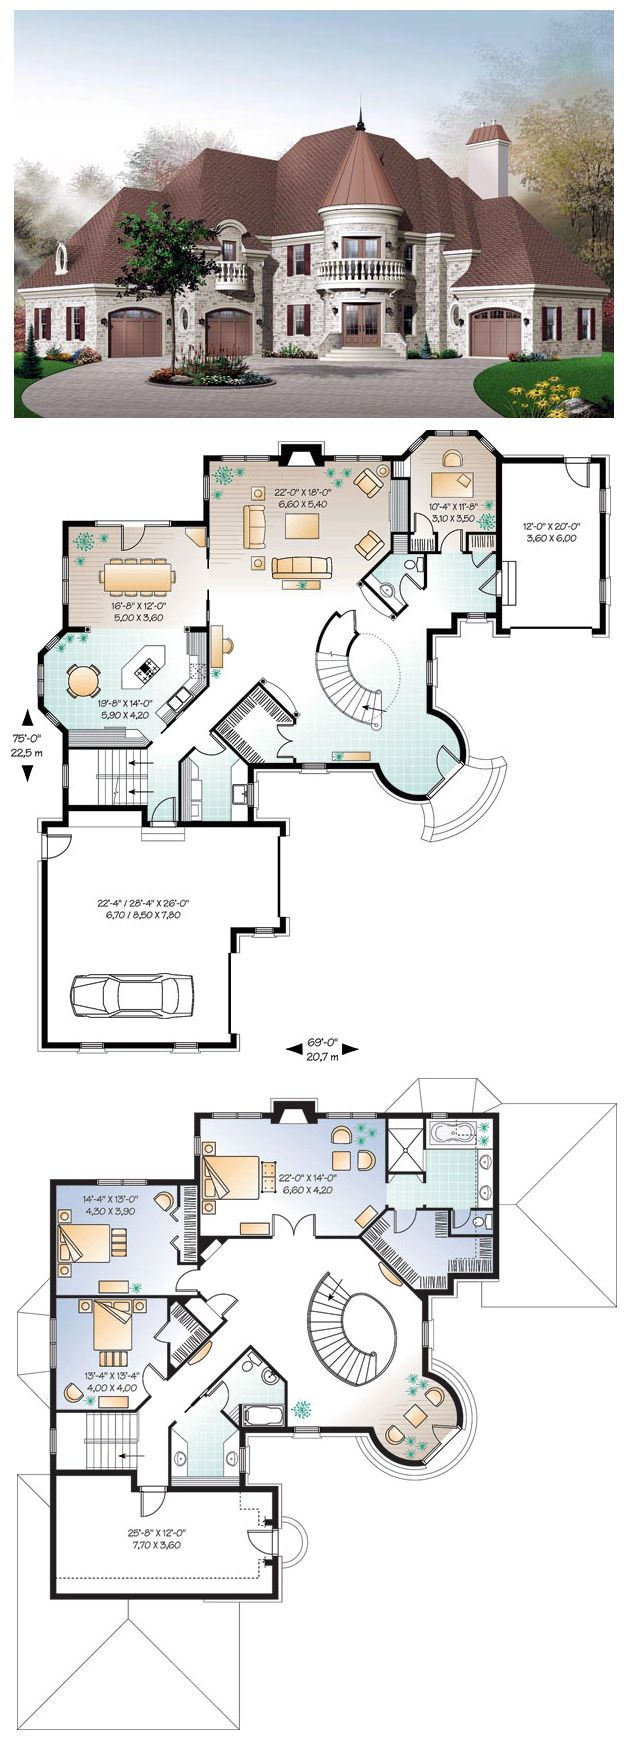 Victorian house plan 65361 the roof garage bedroom and for Victorian house plans with turrets